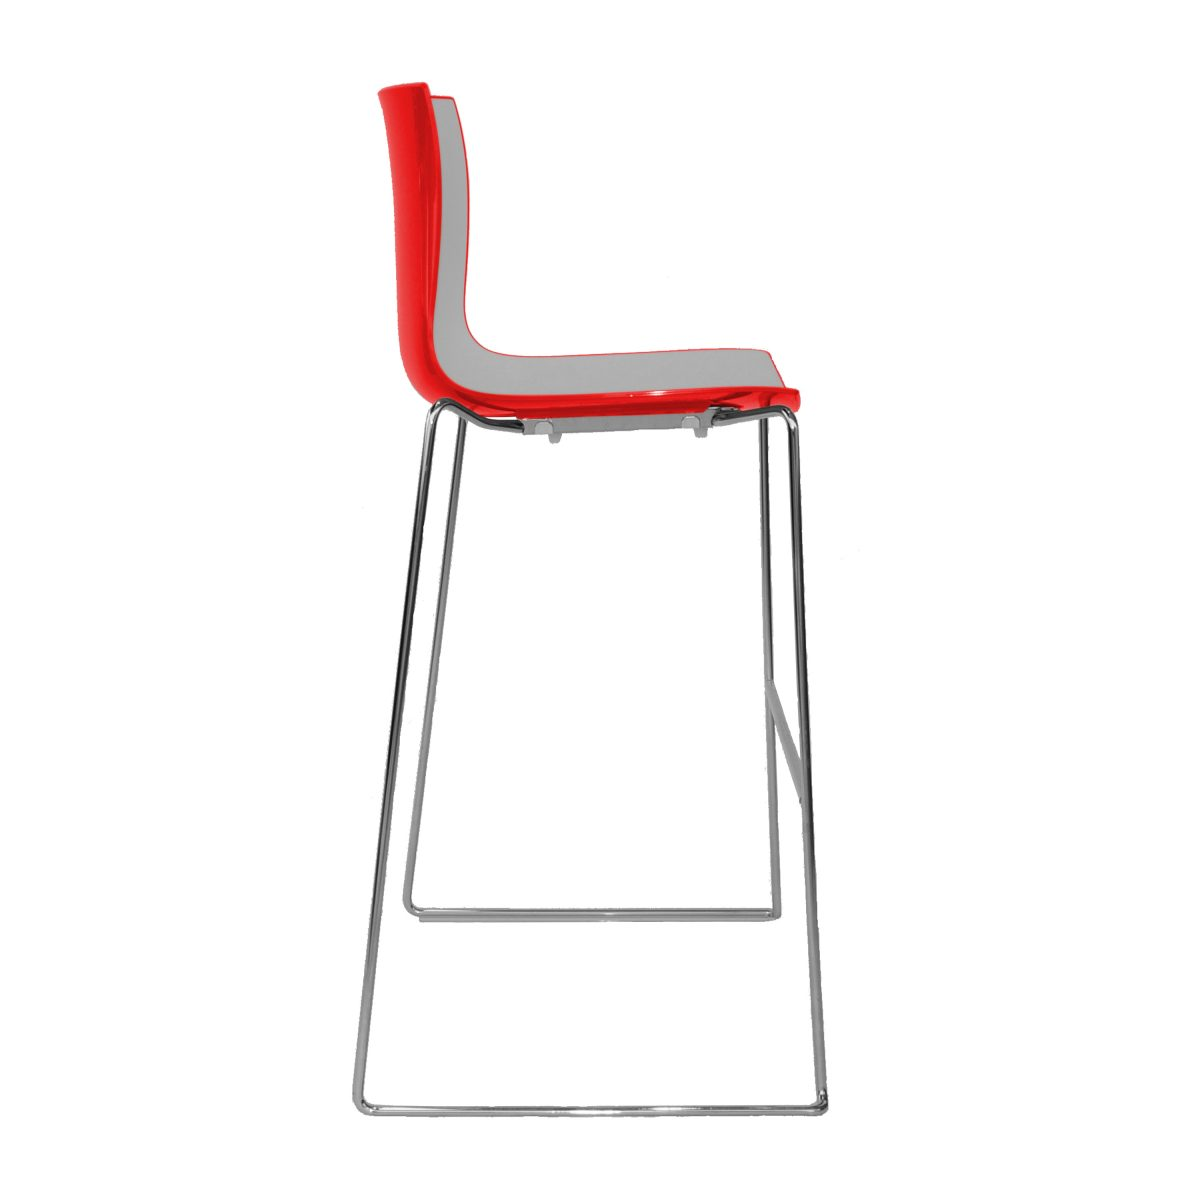 Fine Barstool Barhocker Arper Catifa Lievore Altherr Molina Caraccident5 Cool Chair Designs And Ideas Caraccident5Info